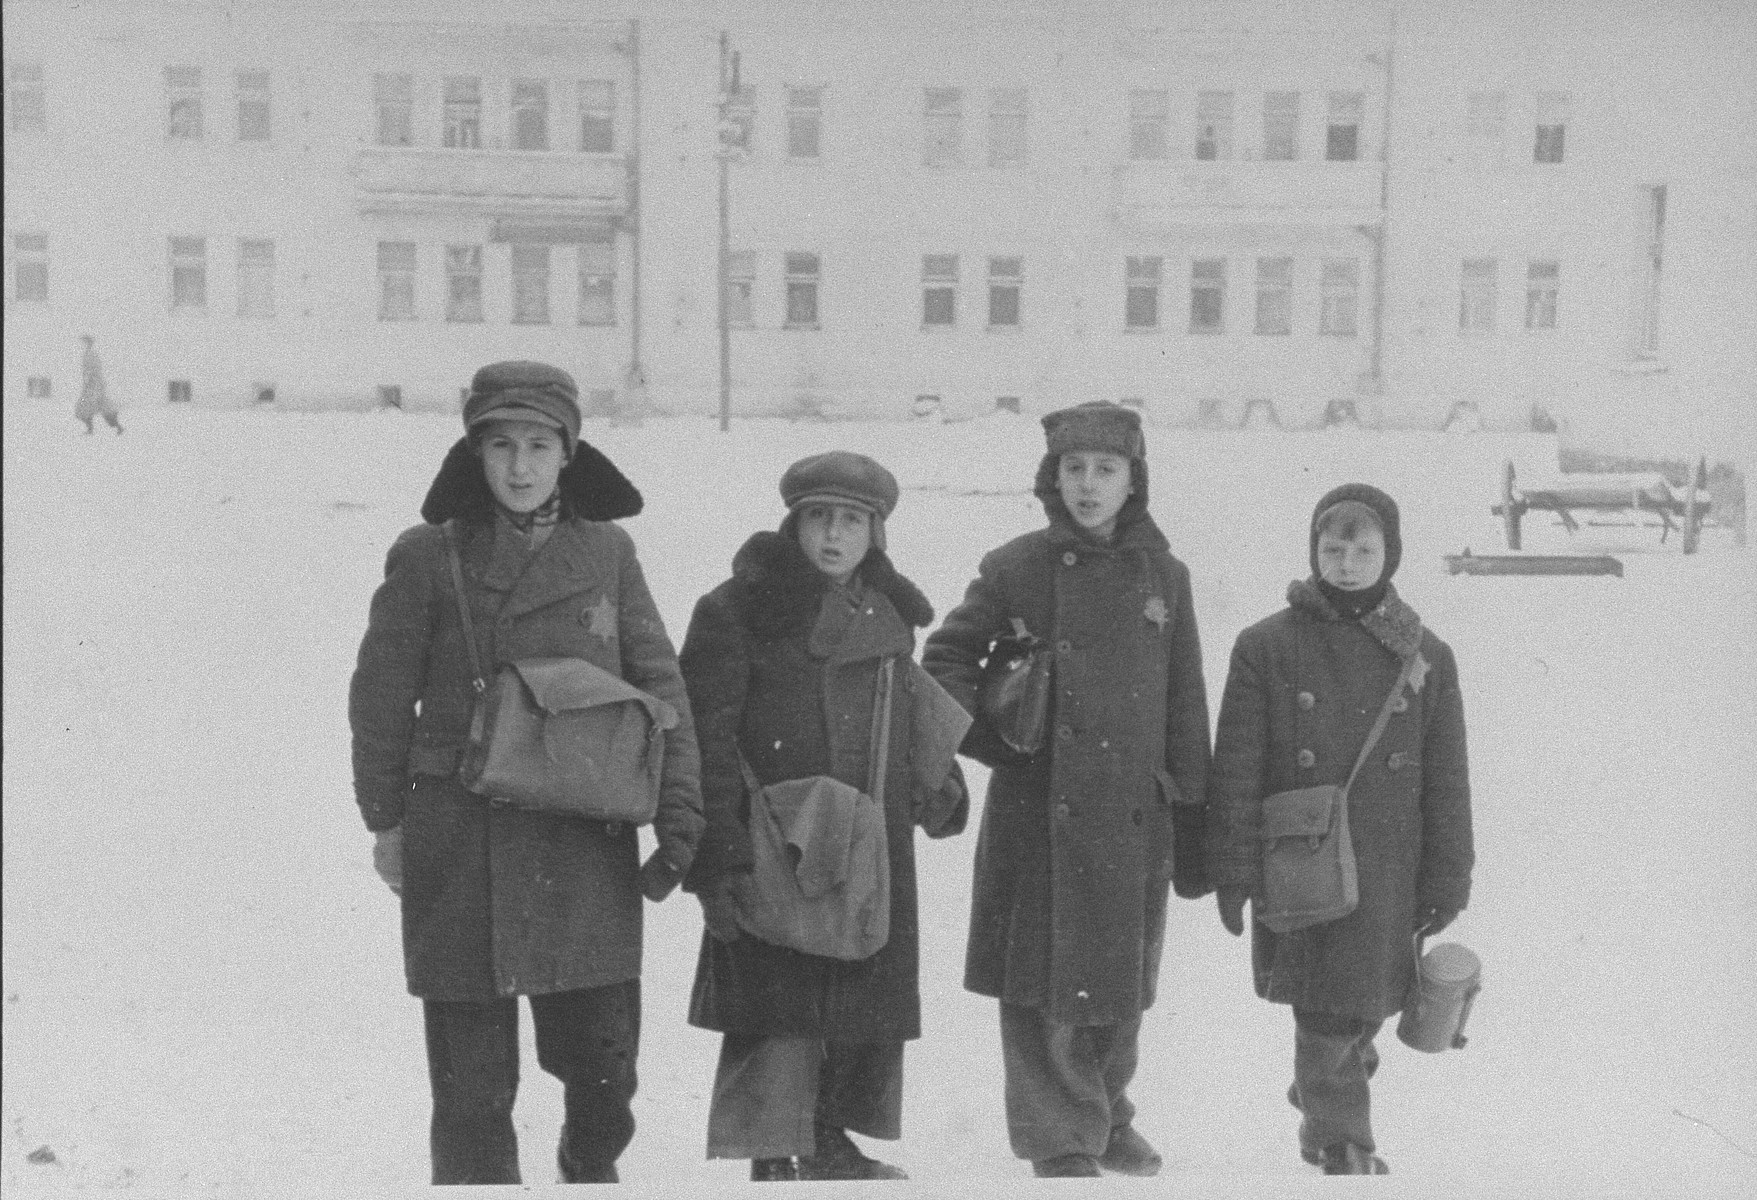 Four school boys pose on a snowy street in the Kovno ghetto with their school bags.  Pictured on the far right is Isroel Isser Shlapoberski (Murka).  According to Rabbi Ephraim Oshry, the boys are students in the religious Tifferes Bachurim school.